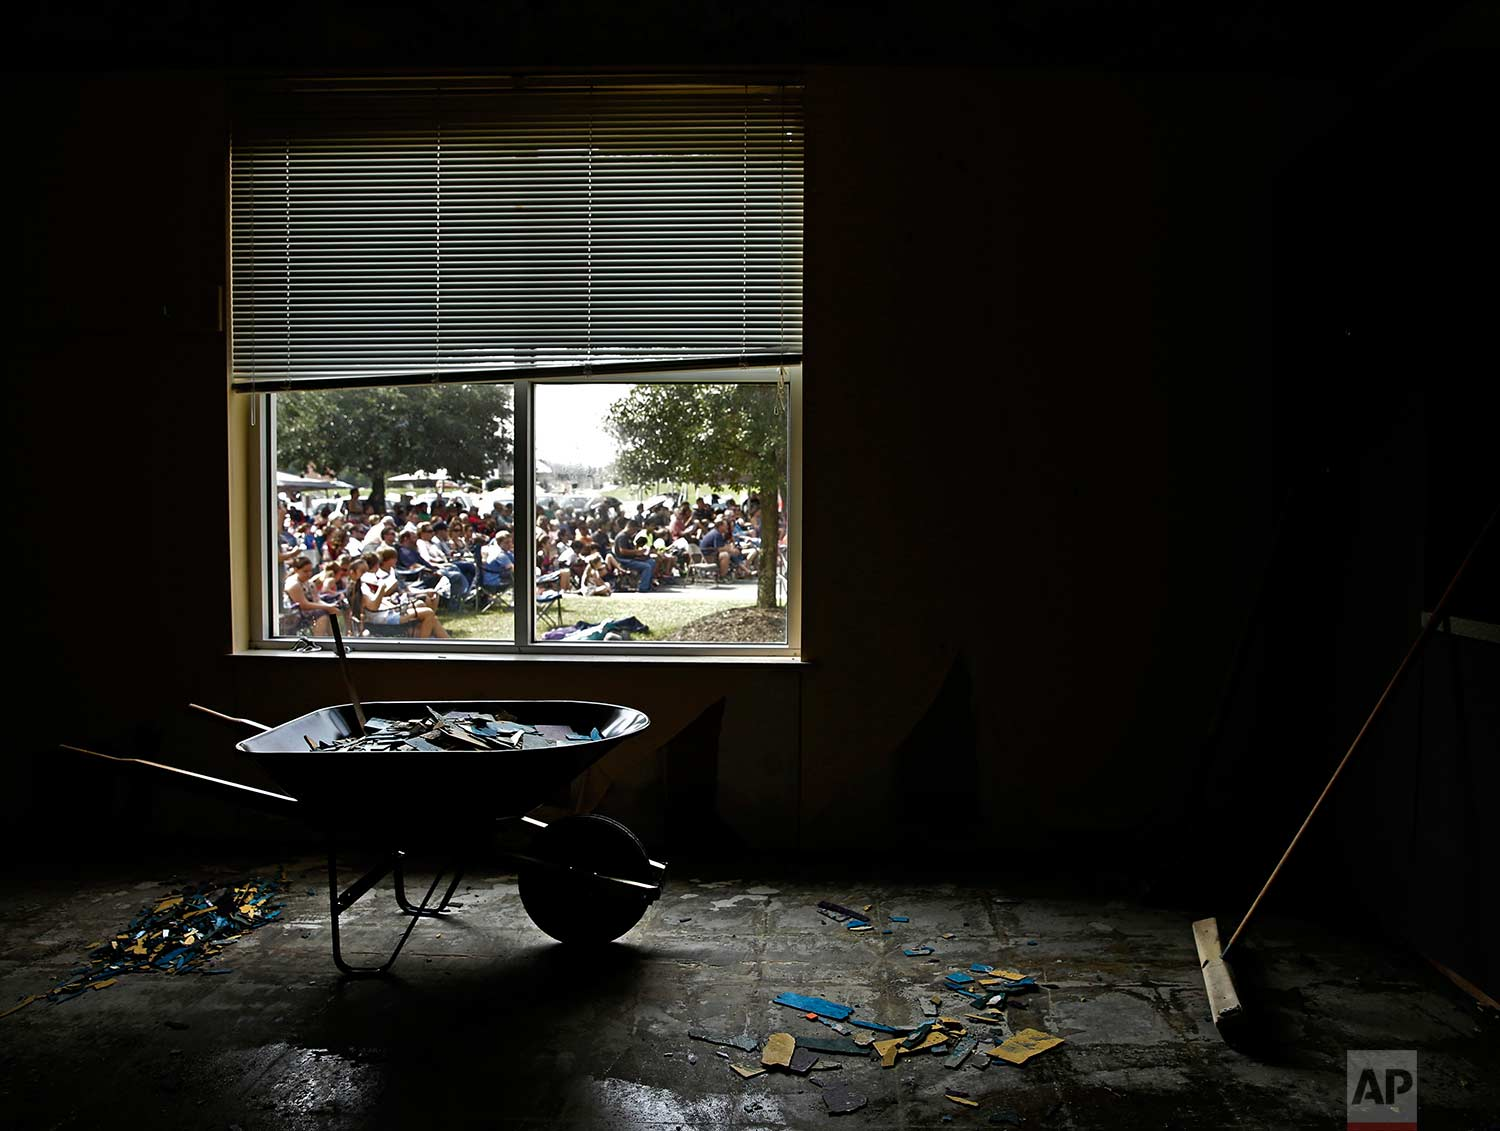 Church members are seen through the window of a water damaged room as they gather in the parking lot of the First Baptist Church for a service Sunday, Sept. 3, 2017, in Humble, Texas. The church building was flooded with two feet of water during Hurricane Harvey, prompting services to be held outside. (AP Photo/Charlie Riedel)